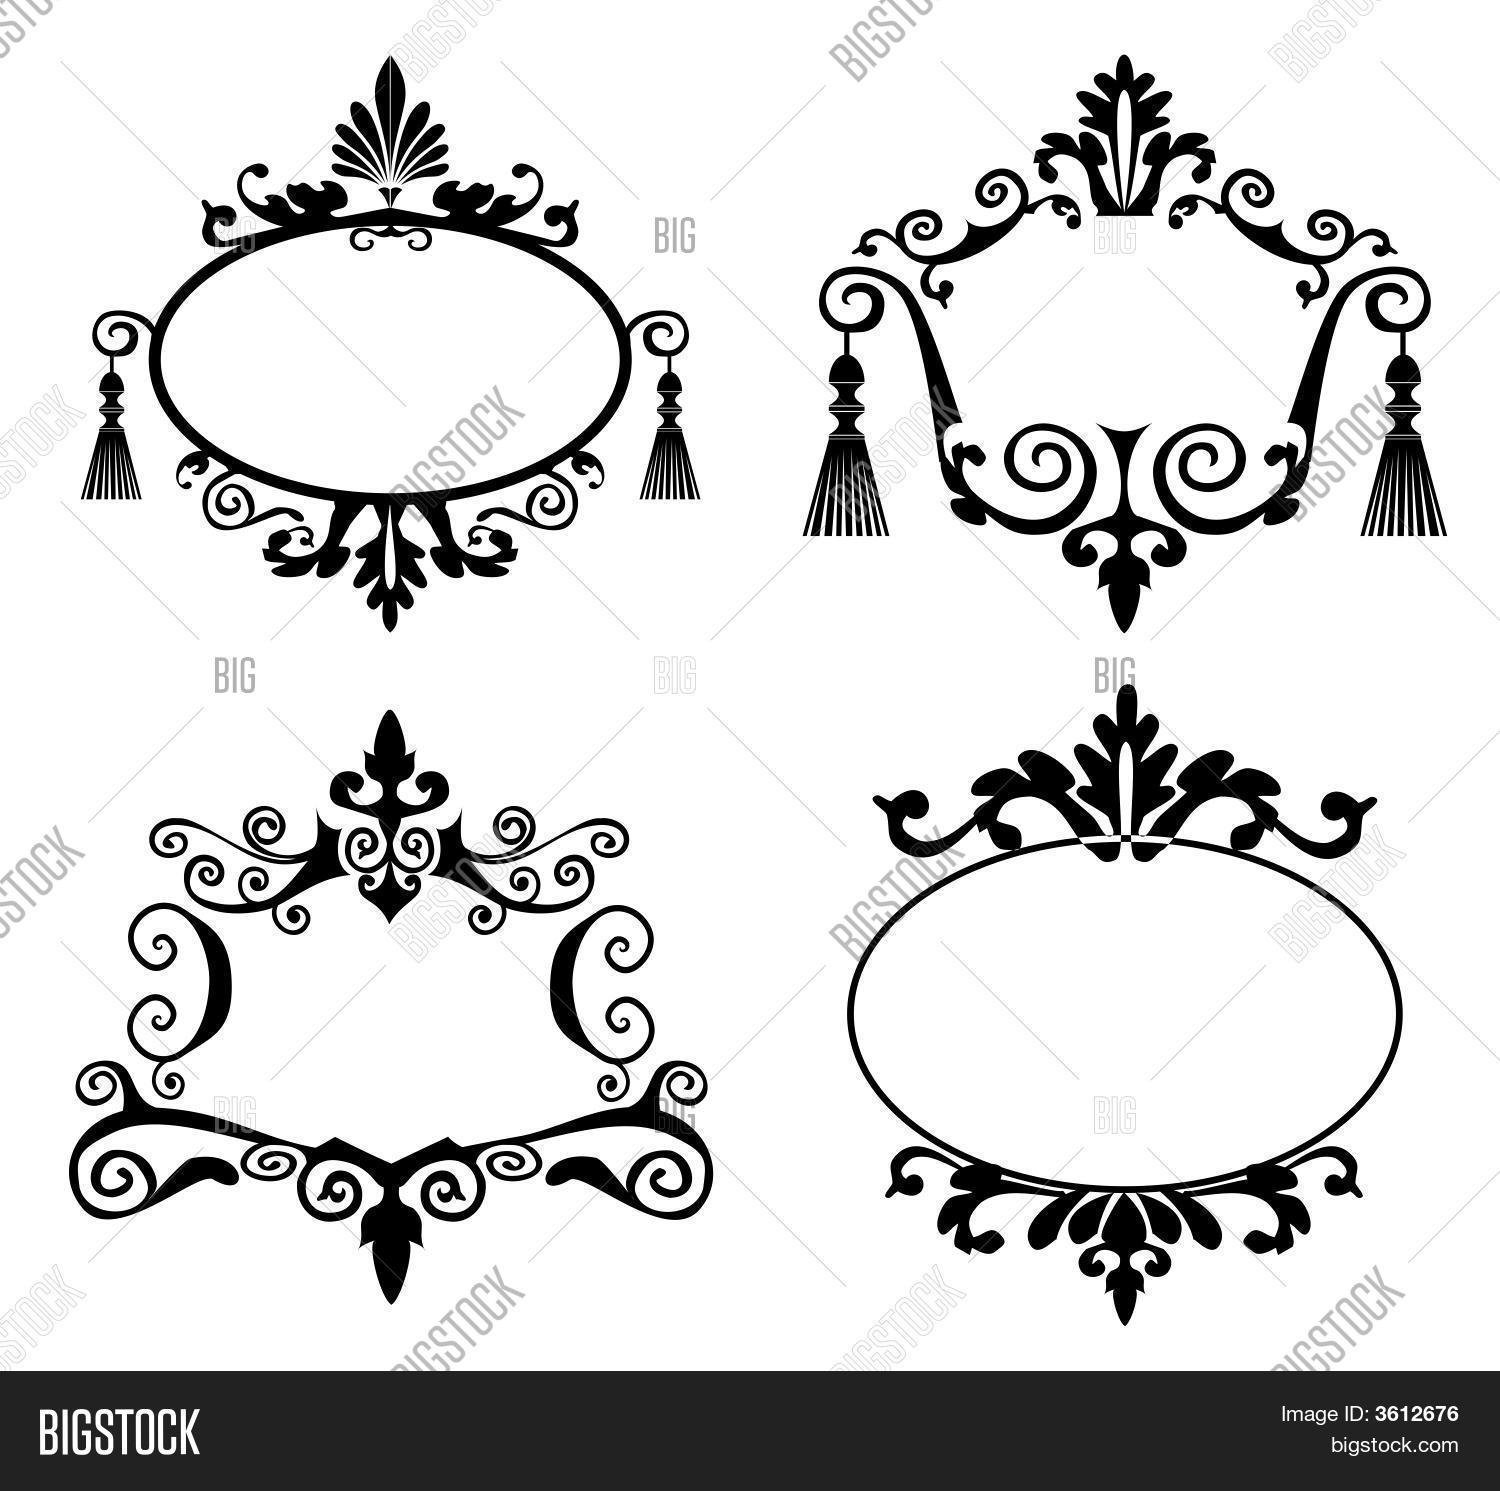 Decorative Frames Vector & Photo (Free Trial) | Bigstock